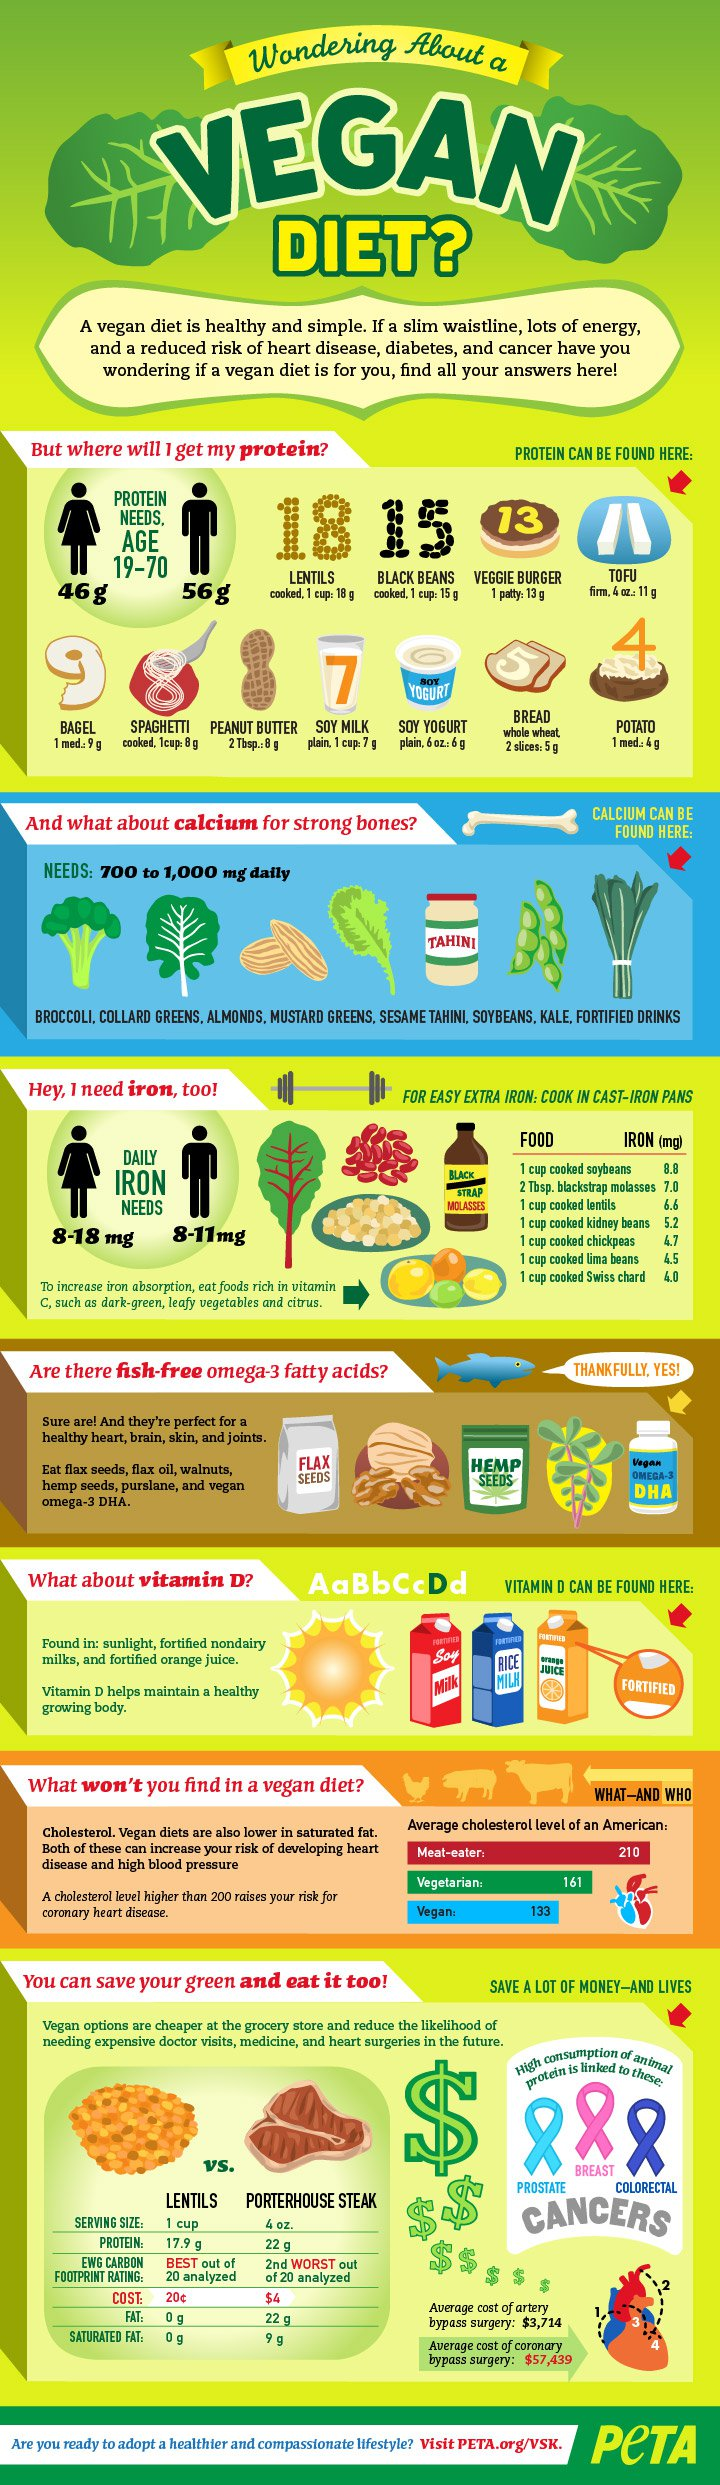 How to Easily Become a Vegetarian